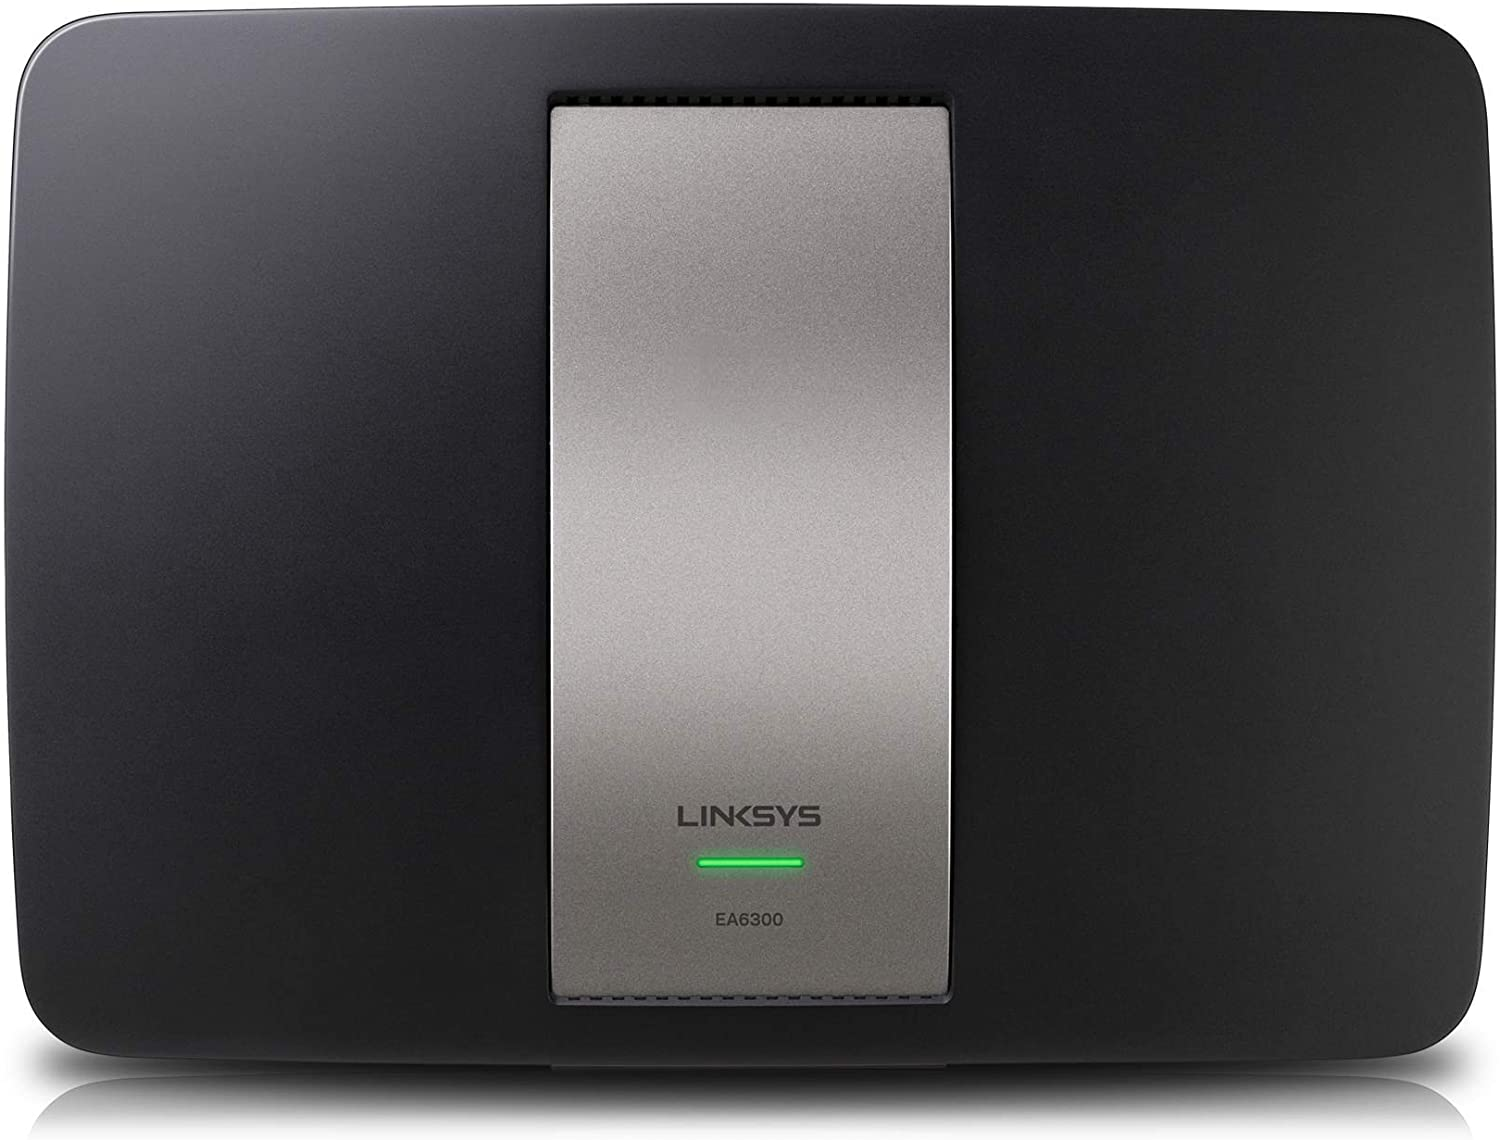 Linksys AC1200 Wi-Fi Wireless Dual-Band+ Router with Gigabit & USB Ports, Smart Wi-Fi App Enabled to Control Your Network from Anywhere (EA6300)